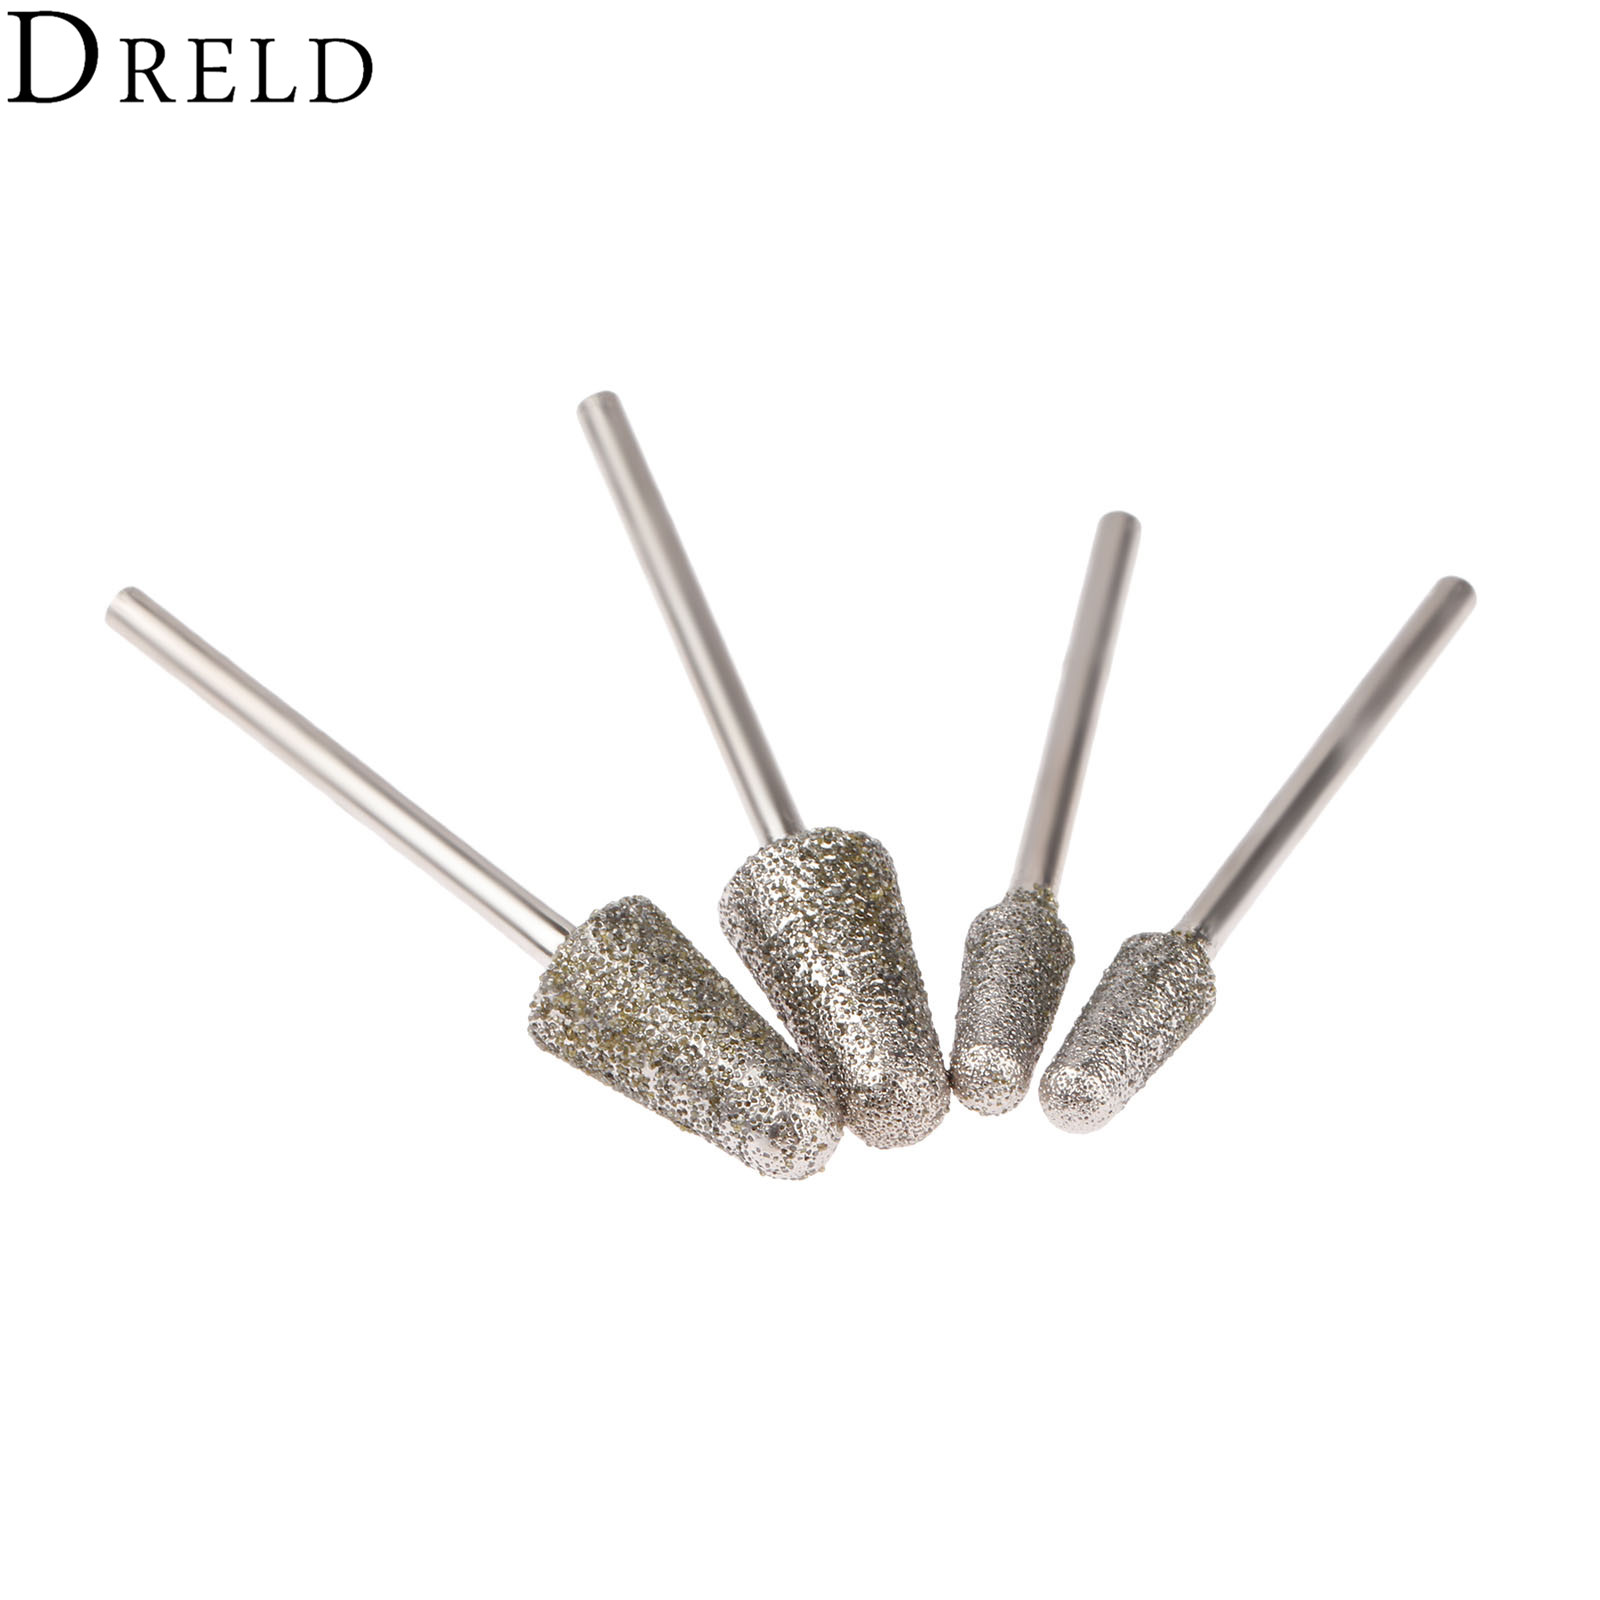 DRELD 4Pcs Dremel Accesories Mini Drill Diamond Grinding Head Burrs Bits 3mm Shank Carving Polishing Cutting Engraving Tool 60#